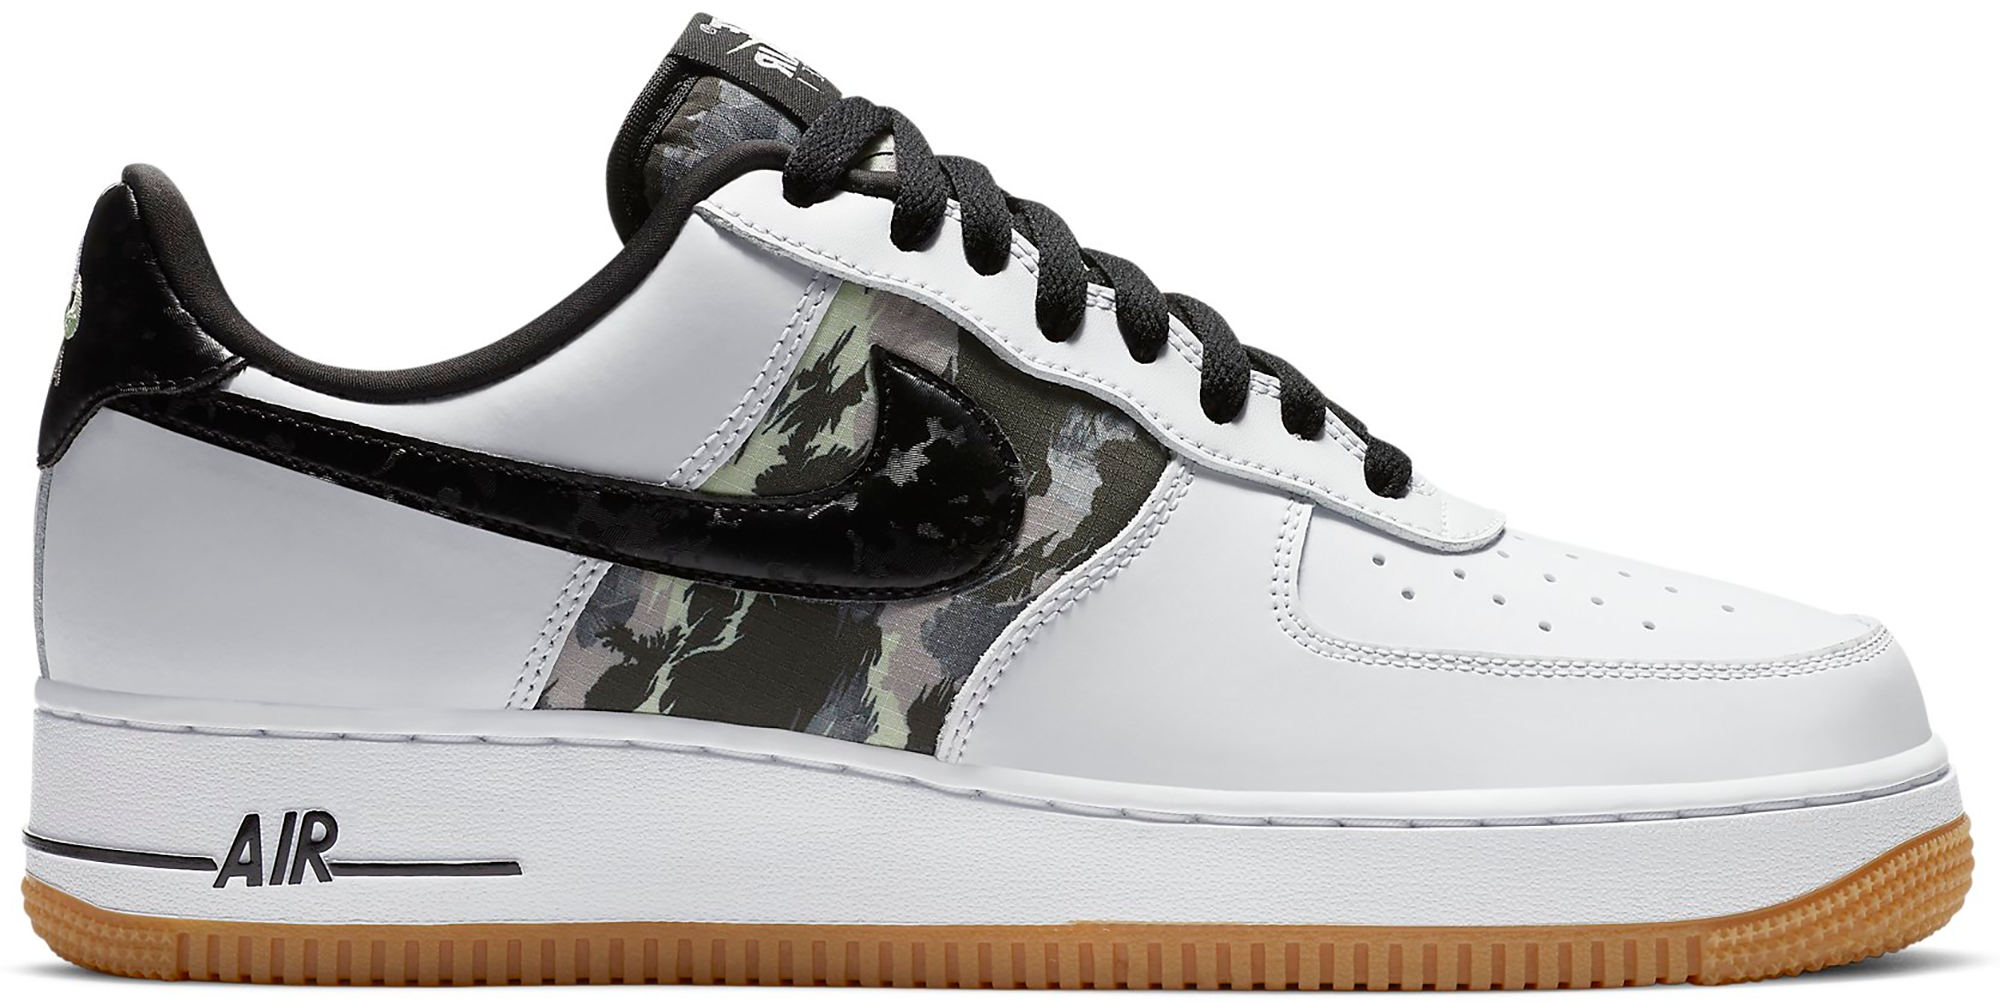 Nike Air Force 1 Low White Ripstop Camo